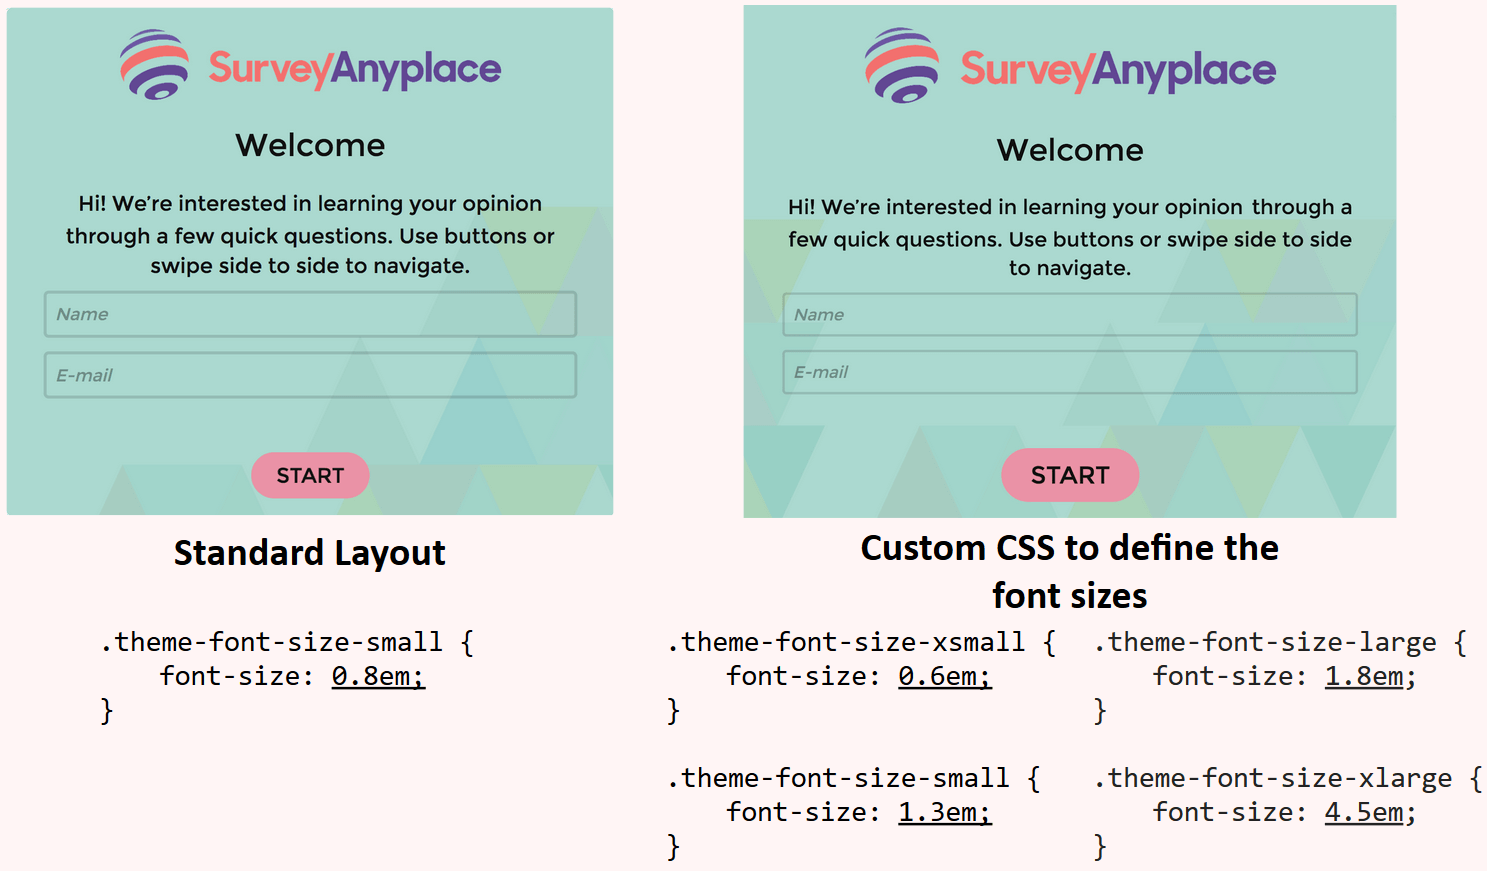 Custom CSS to define font size